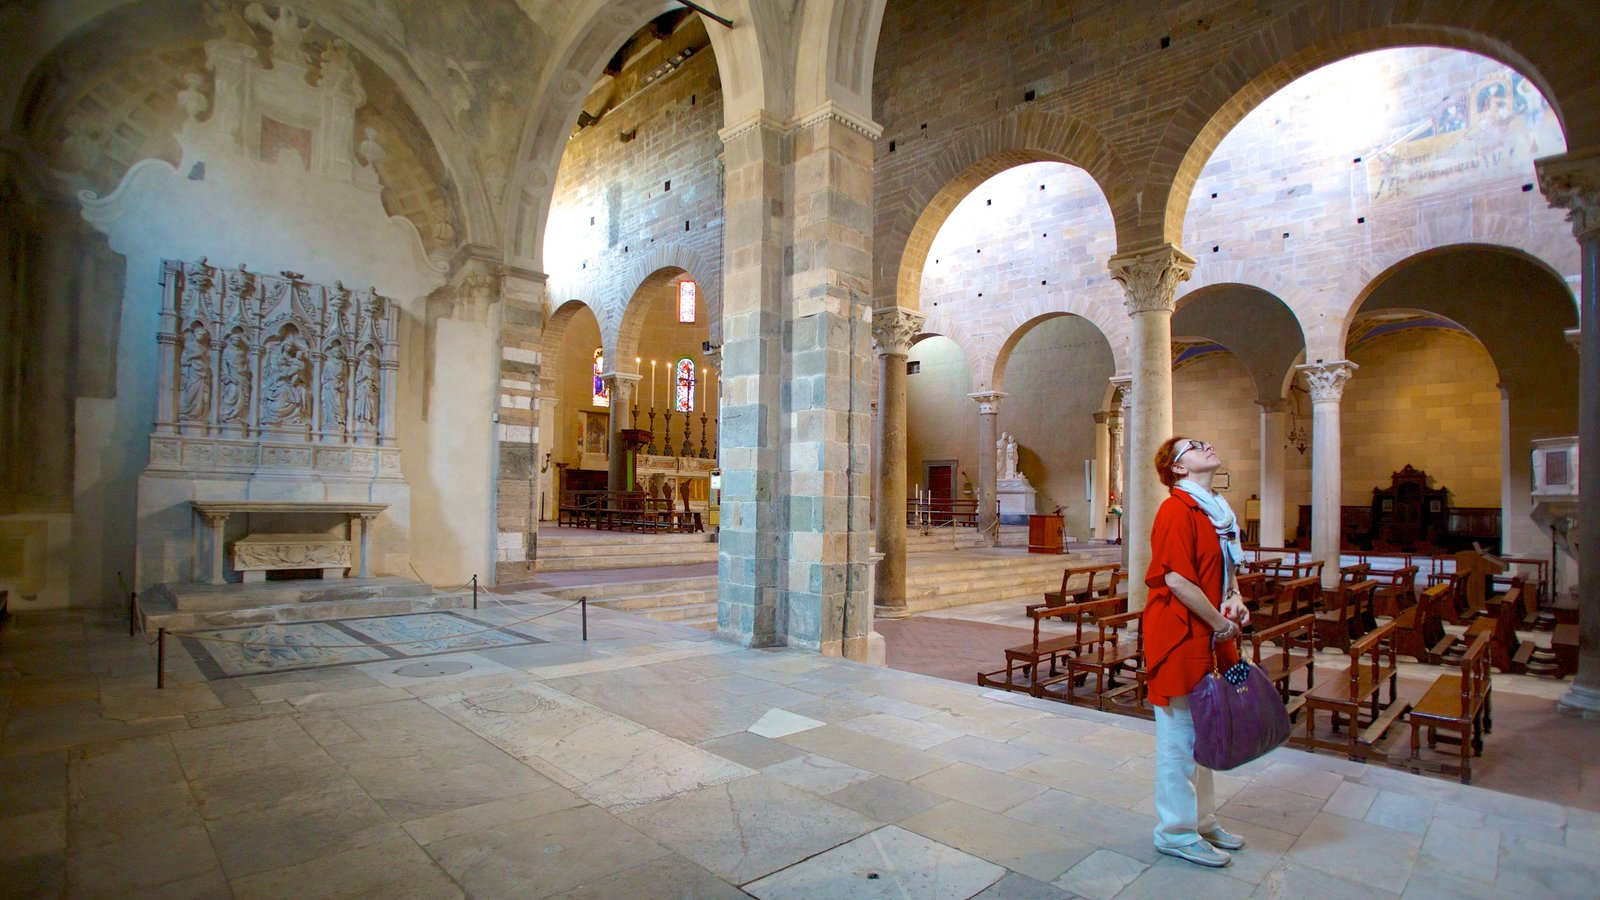 Basilica di San Frediano featuring heritage architecture, religious elements and a church or cathedral